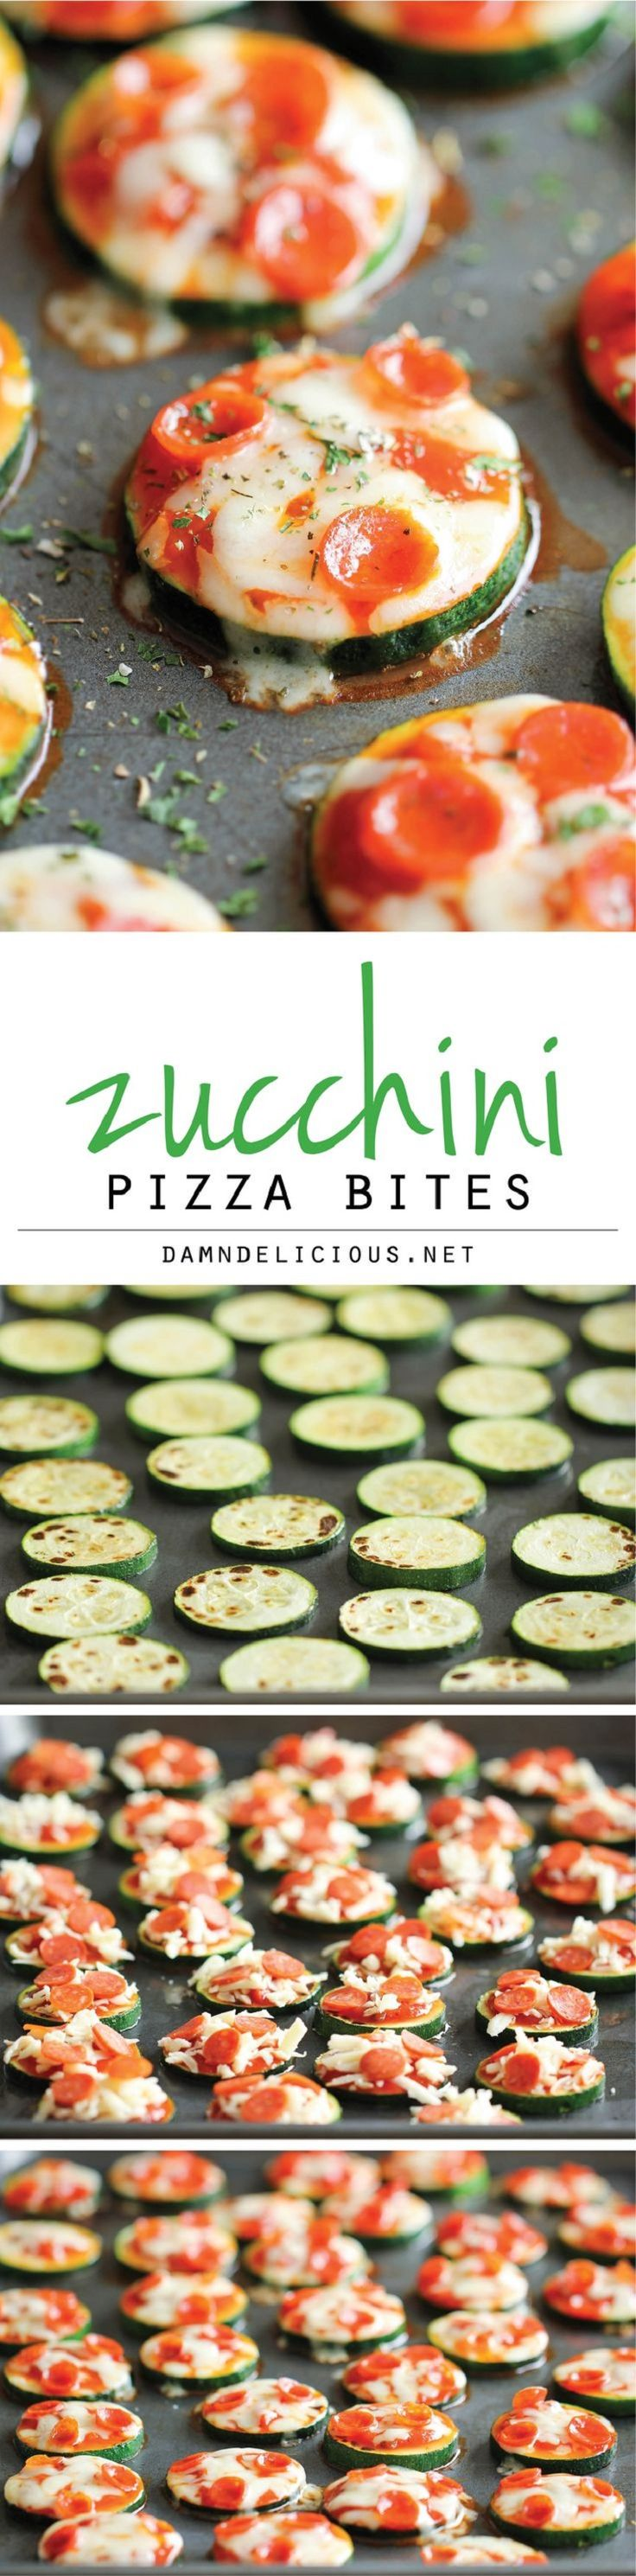 Zucchini Pizza Bites - 15 Healthy Options to Beat Pizza Cravings – GleamItUp